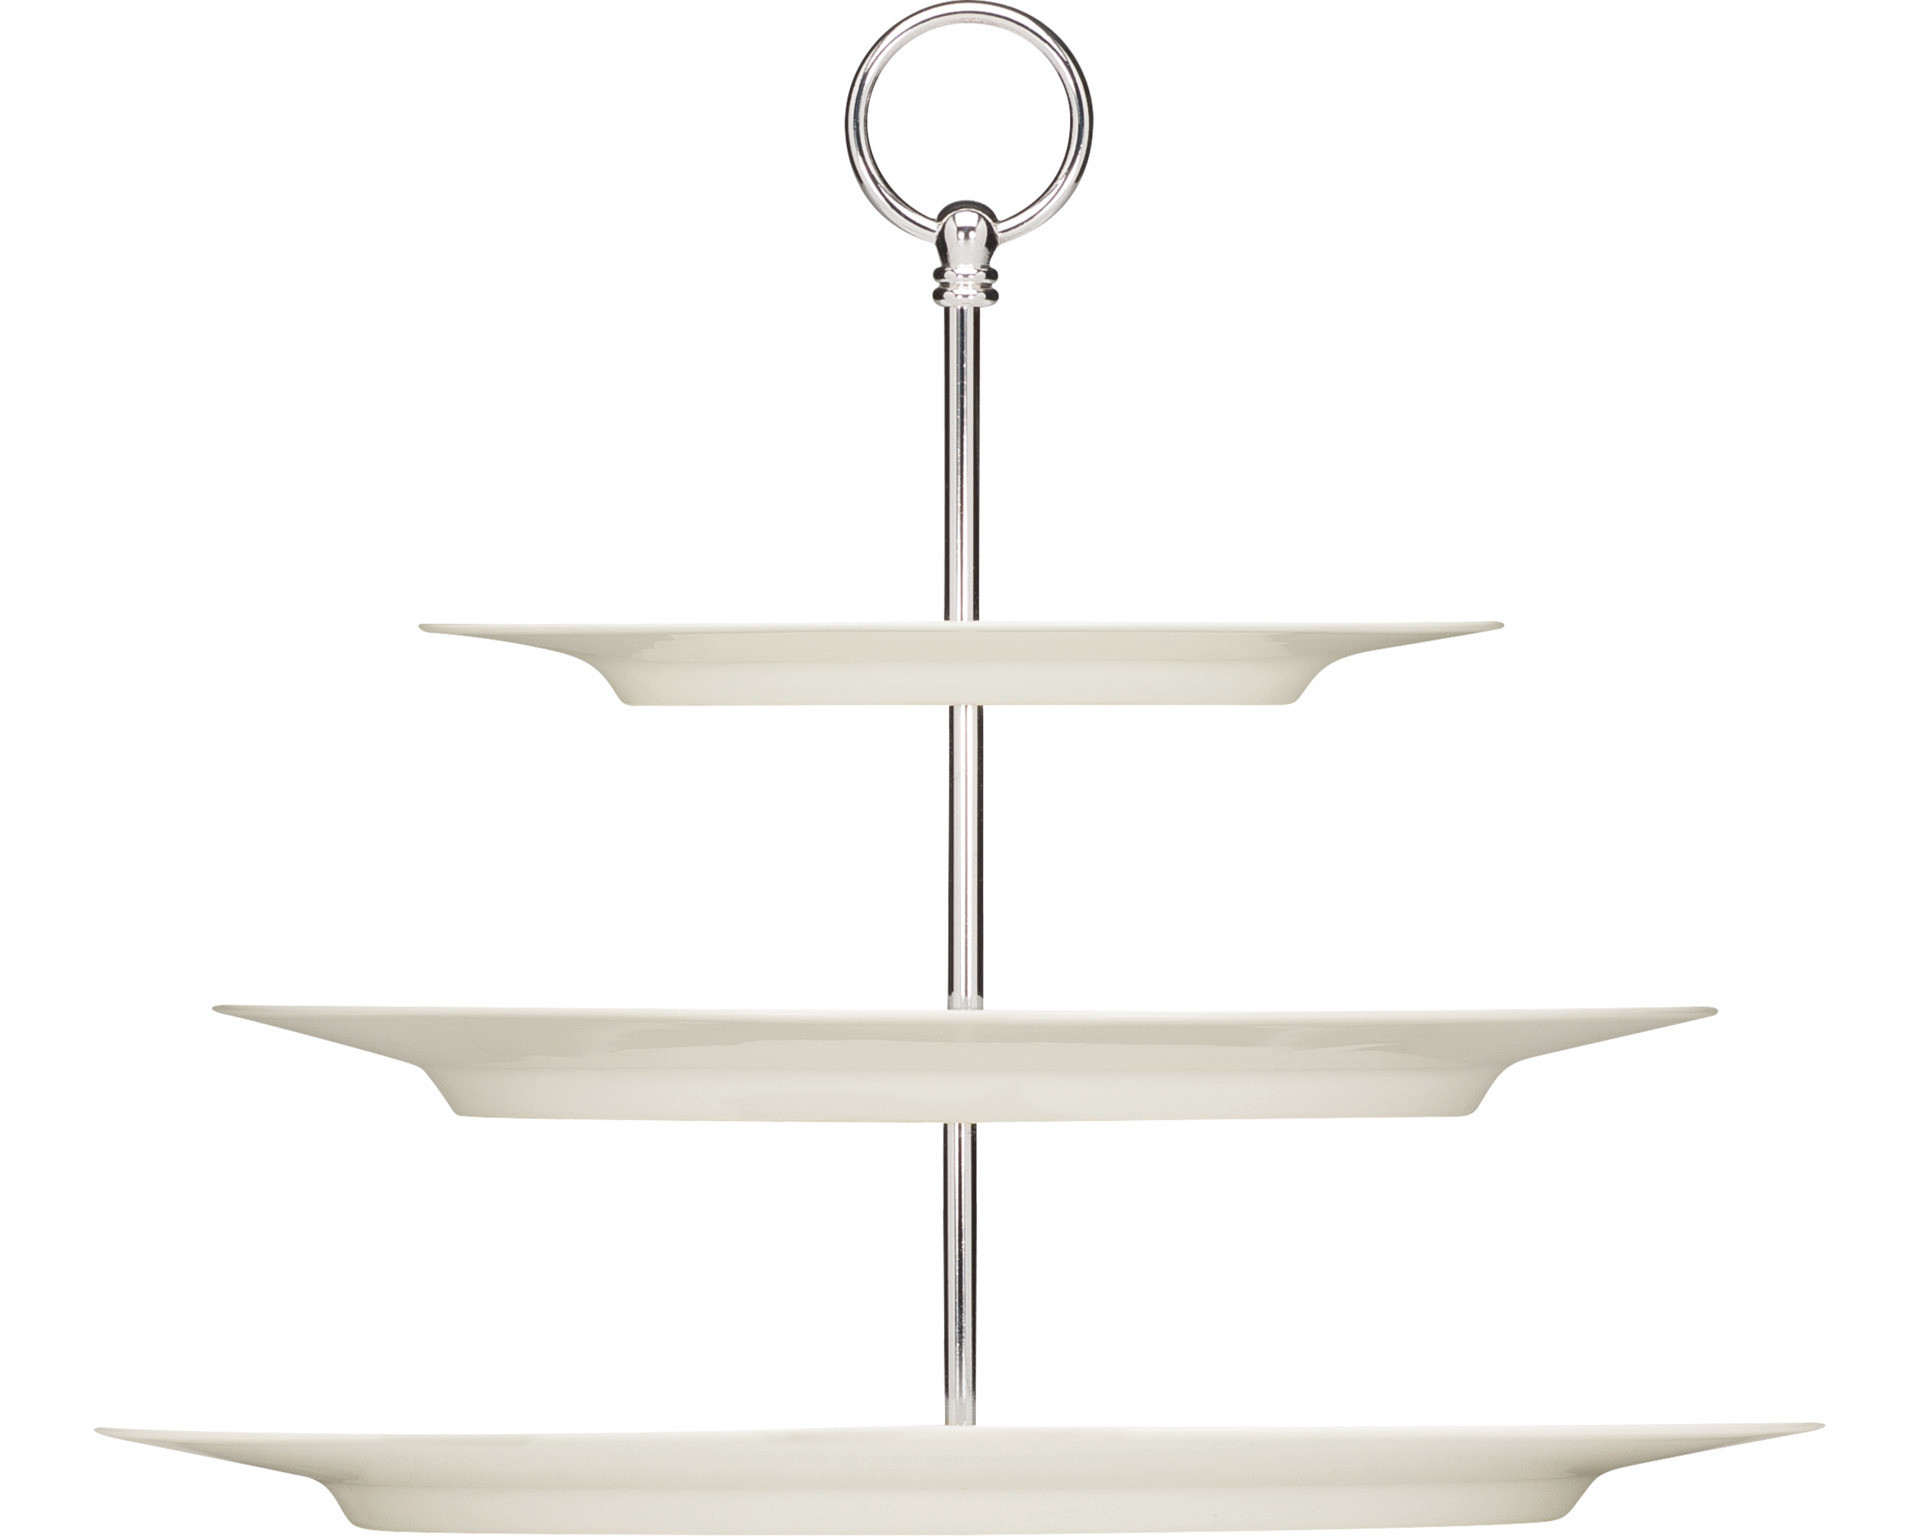 Purity, Etagere + Platte oval mit Fahne 3-fach 378 x 277 x 324 mm